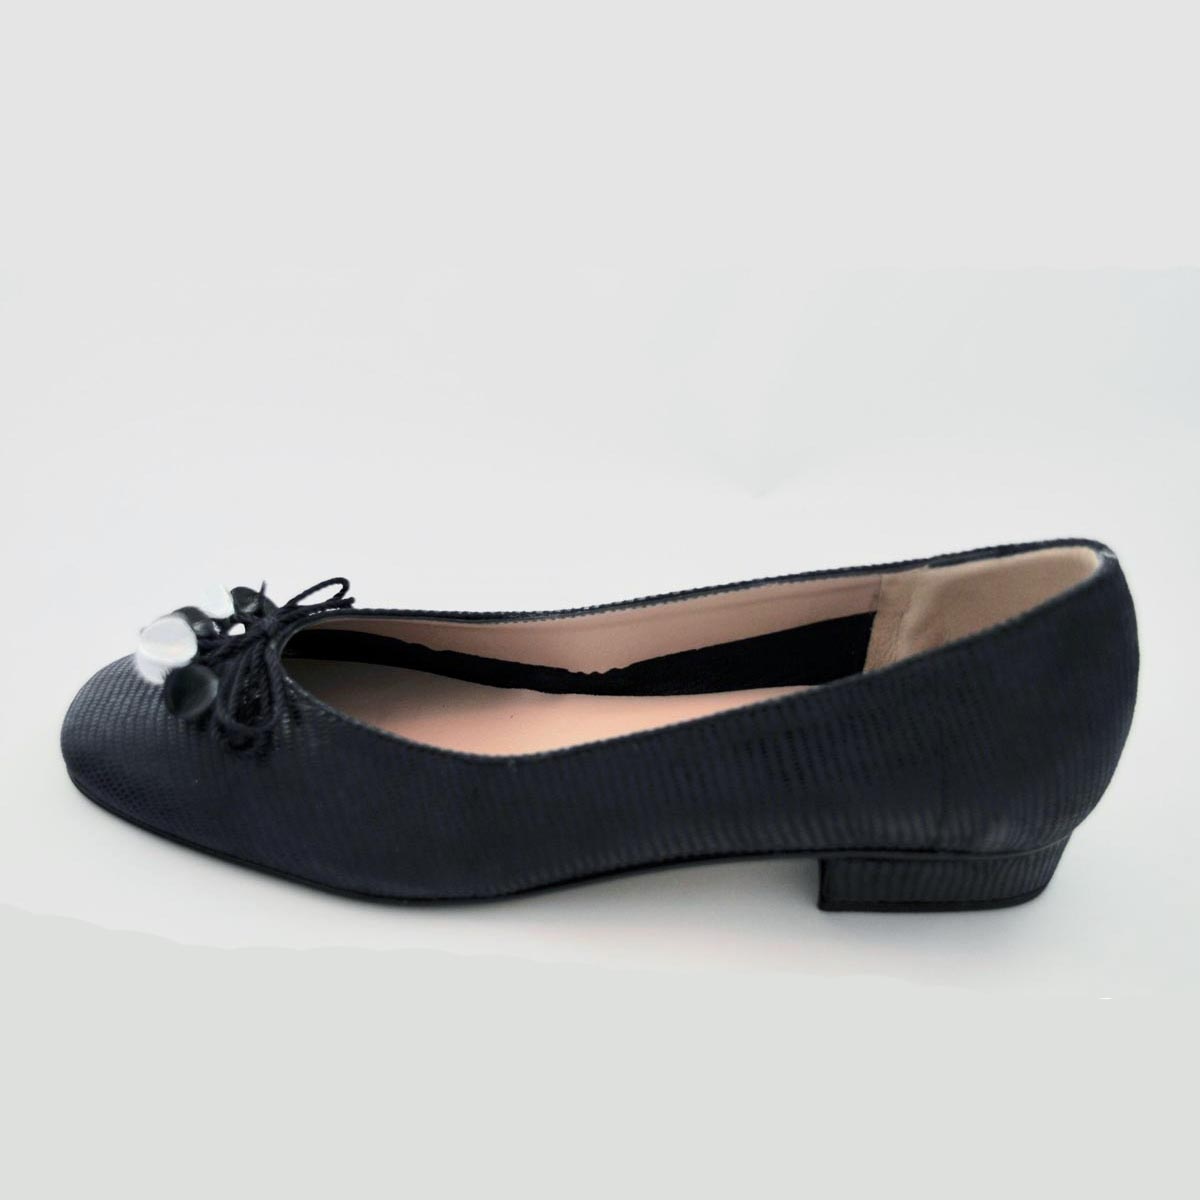 HB Italia - Jest Navy Pump Shoe